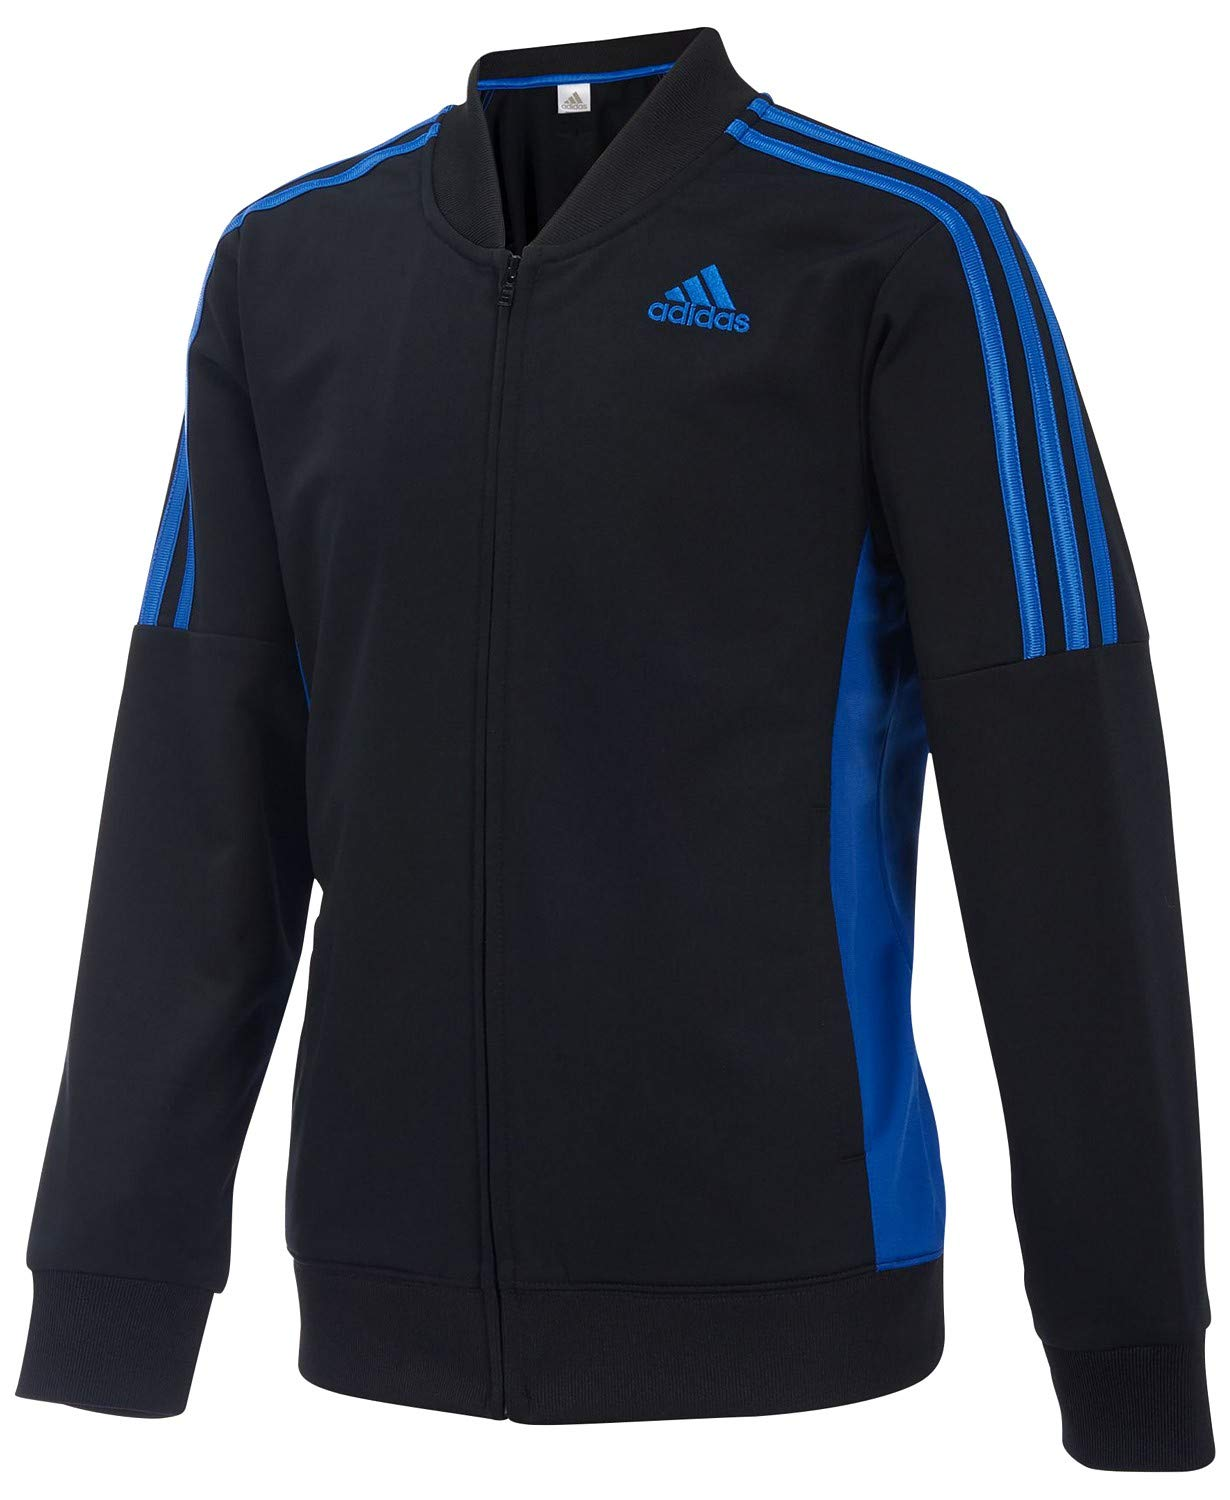 adidas Boys Athletic Linear Jacket ((Large 14/16), Black/True Blue)